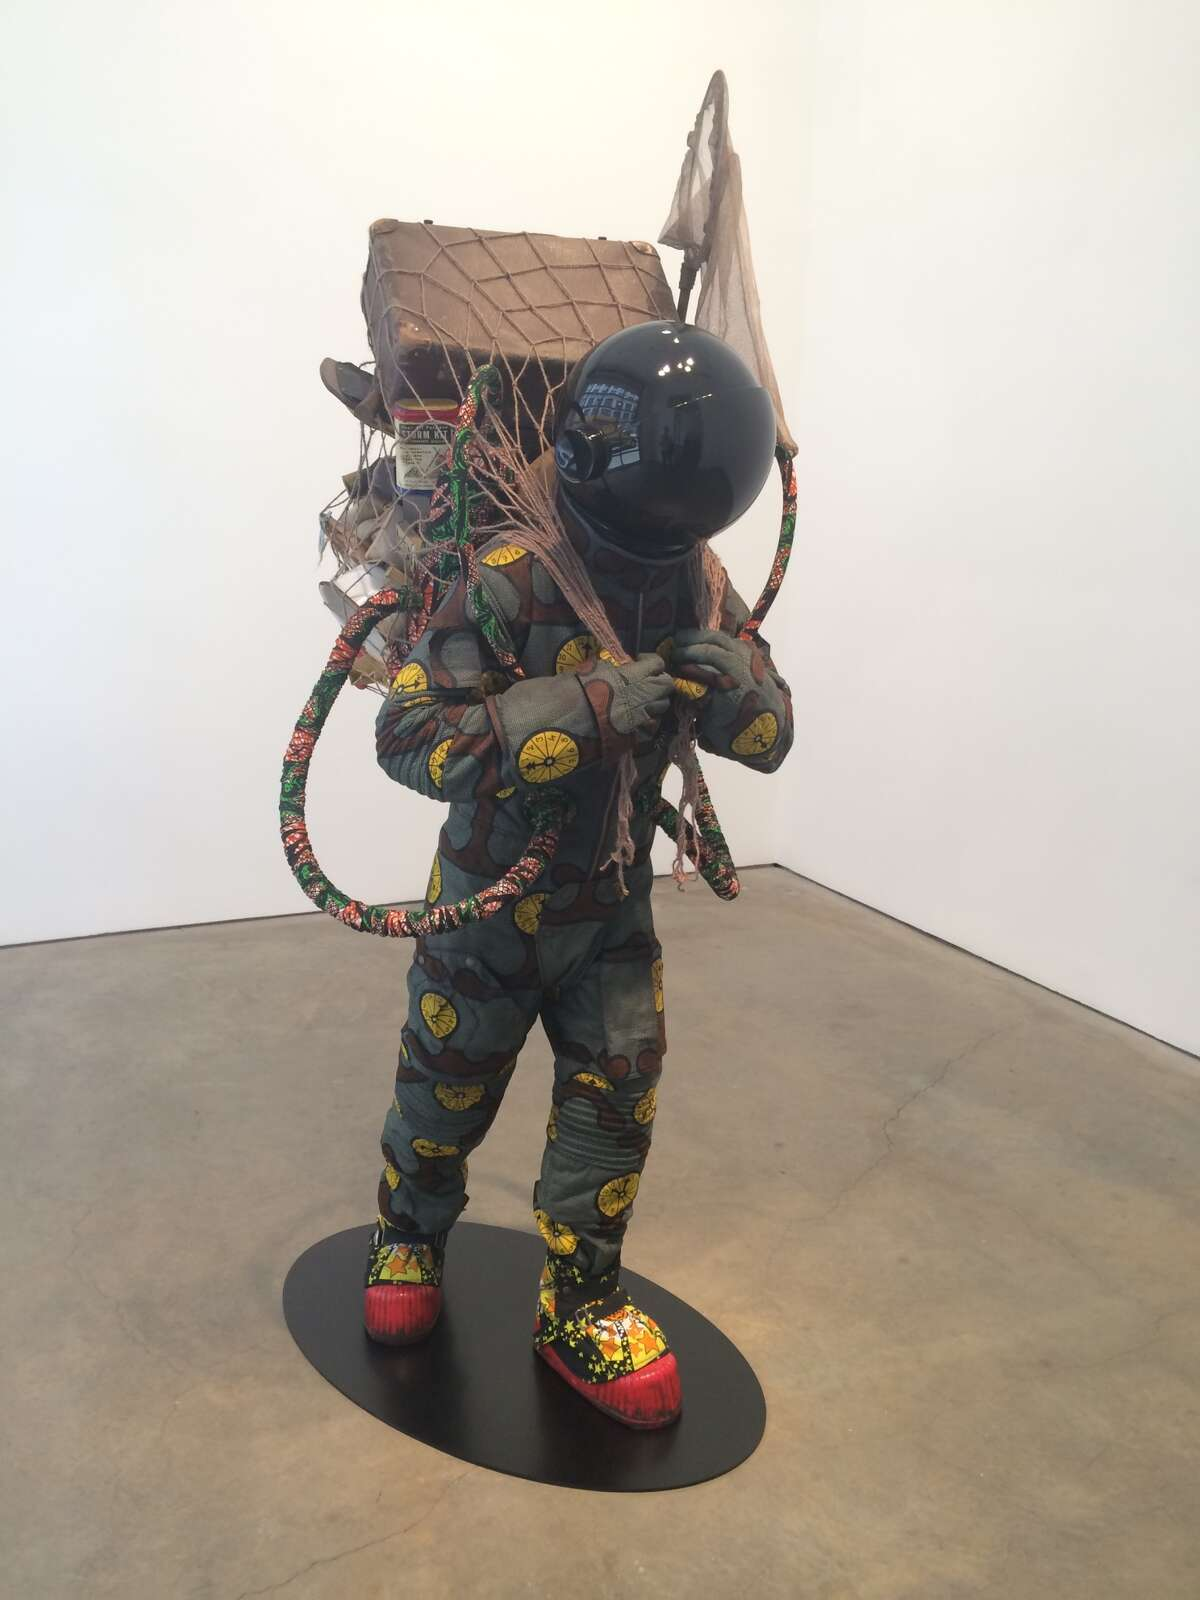 """""""Refugee Astronaut"""" by Yinka Shonibare, MBE, on view in May 2015 at the James Cohan Gallery in New York City. The sculpture served as inspiration for Michael Janairo's poem """"For Your Own Safety,"""" which was nominated by Star*Line magazine for a Pushcart Prize. (Photograph by Michael Janairo)"""